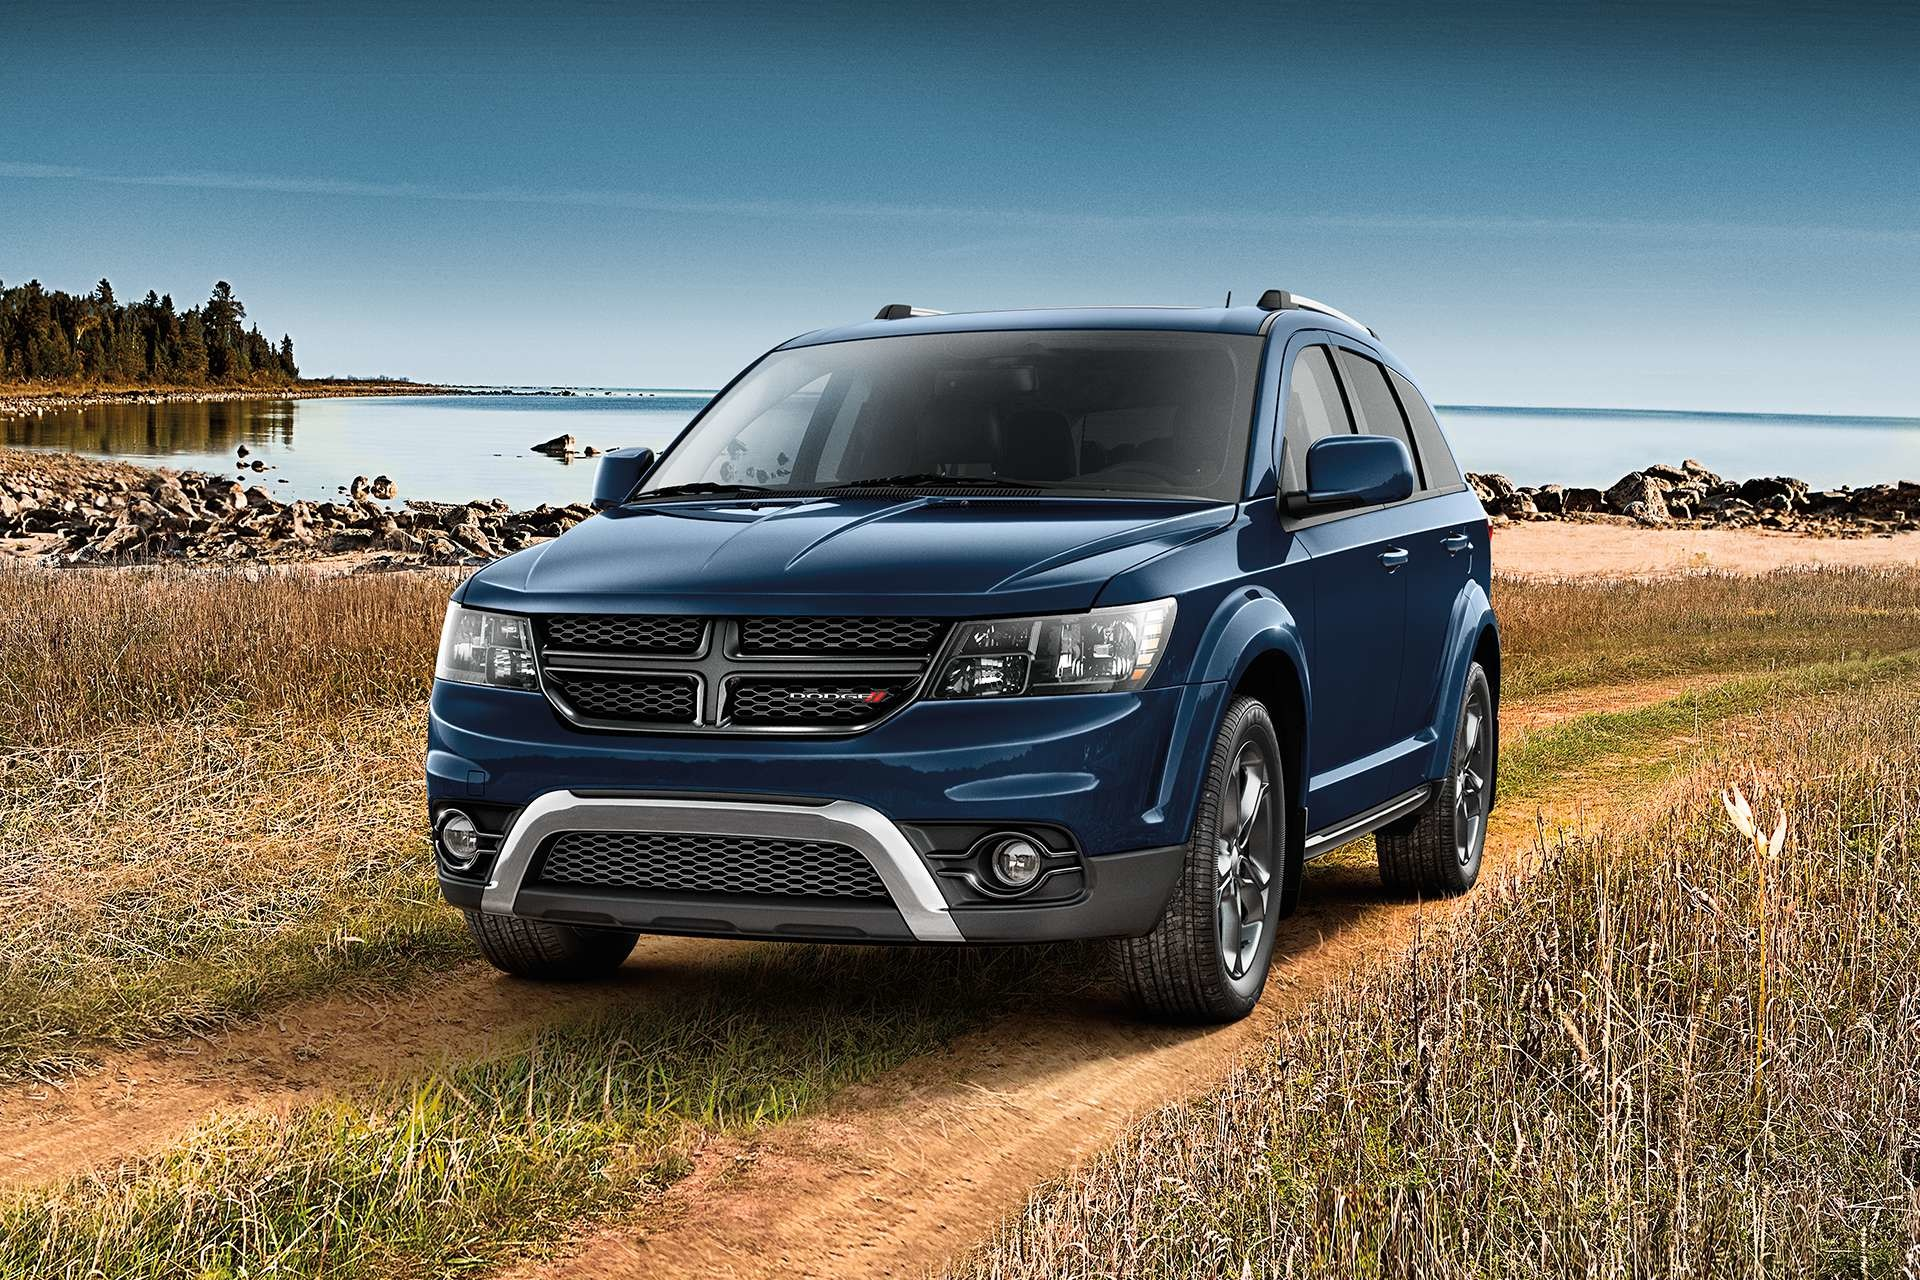 2018 Dodge Journey Crossover SUV | Dodge Canada